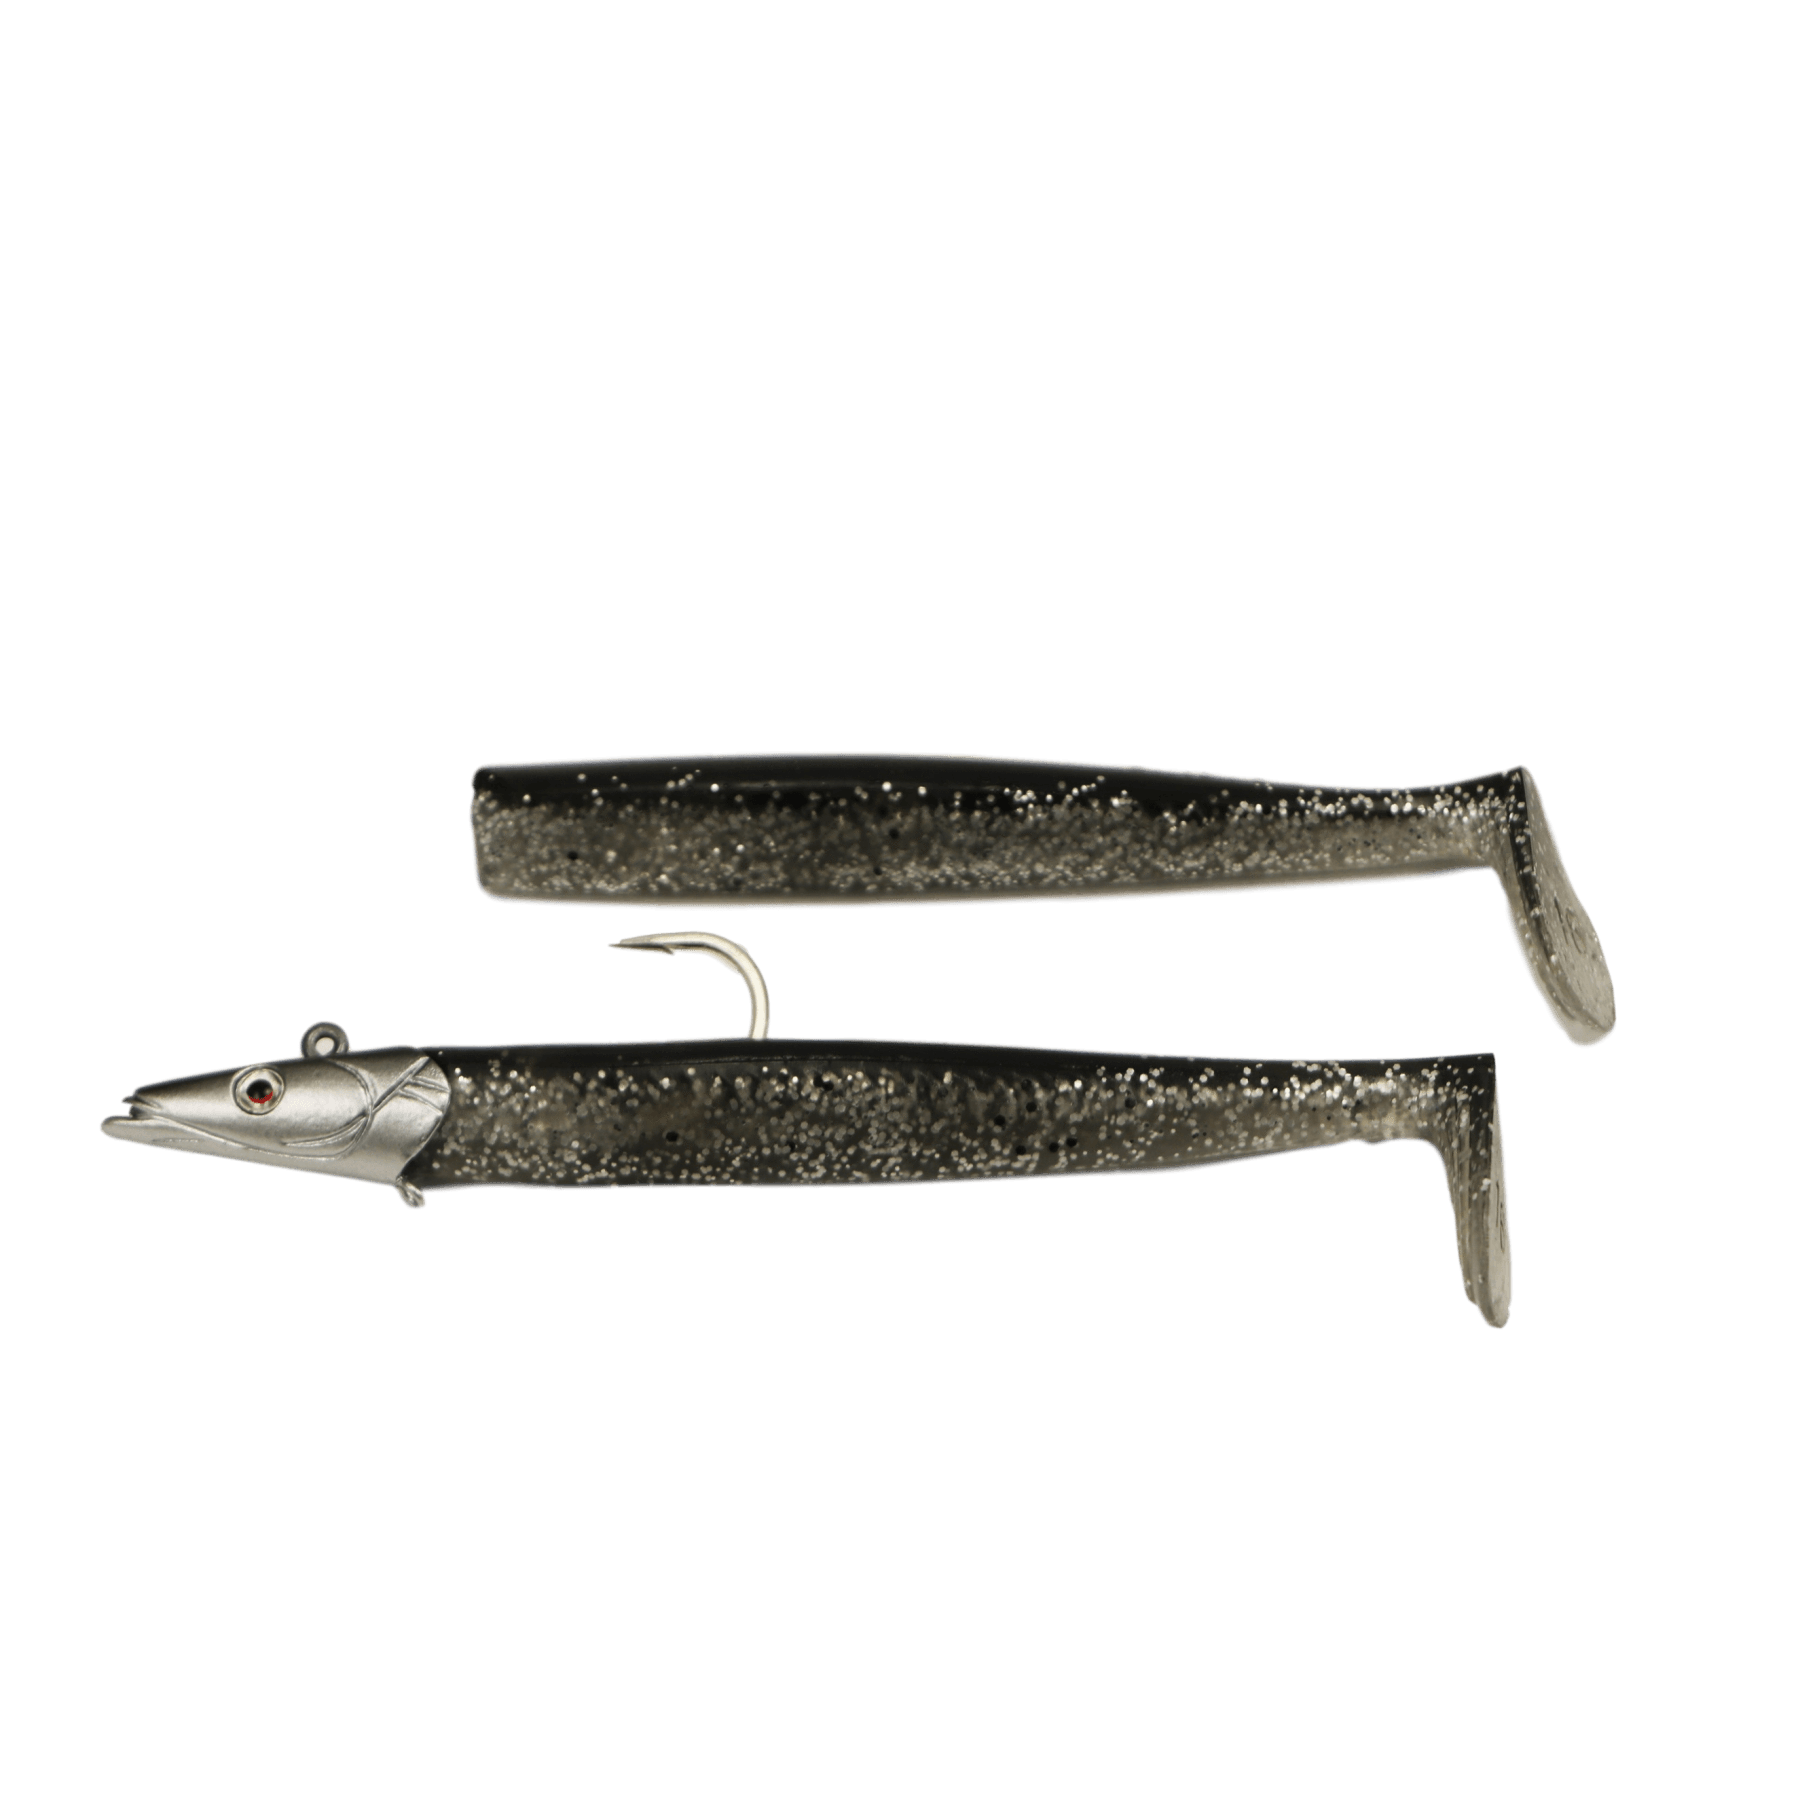 Savage gear lb sandeel jig head #1//0 #3//0 3pc accessories for soft lures